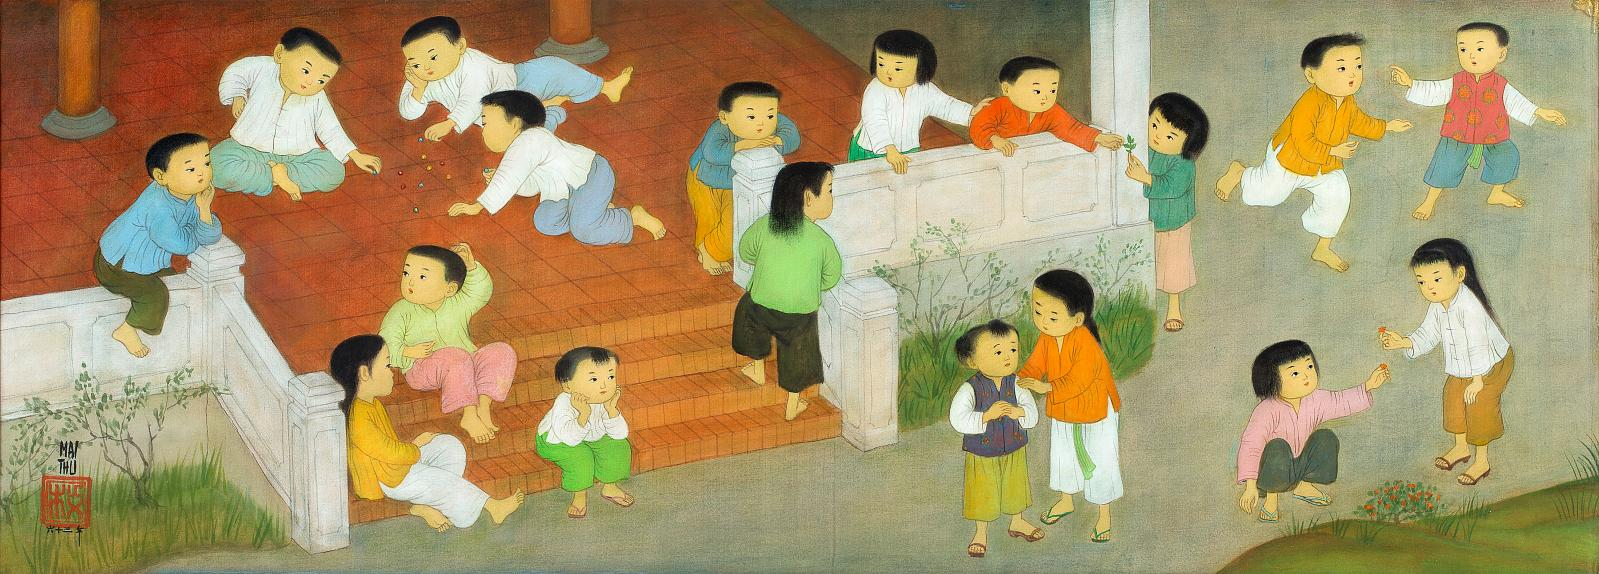 Mai Trung Thu, dit Mai-Thu (1906-1980), Joie de vivre II, 1963, ink and colors on silk, 35 x 95 cm.Result: €297,080